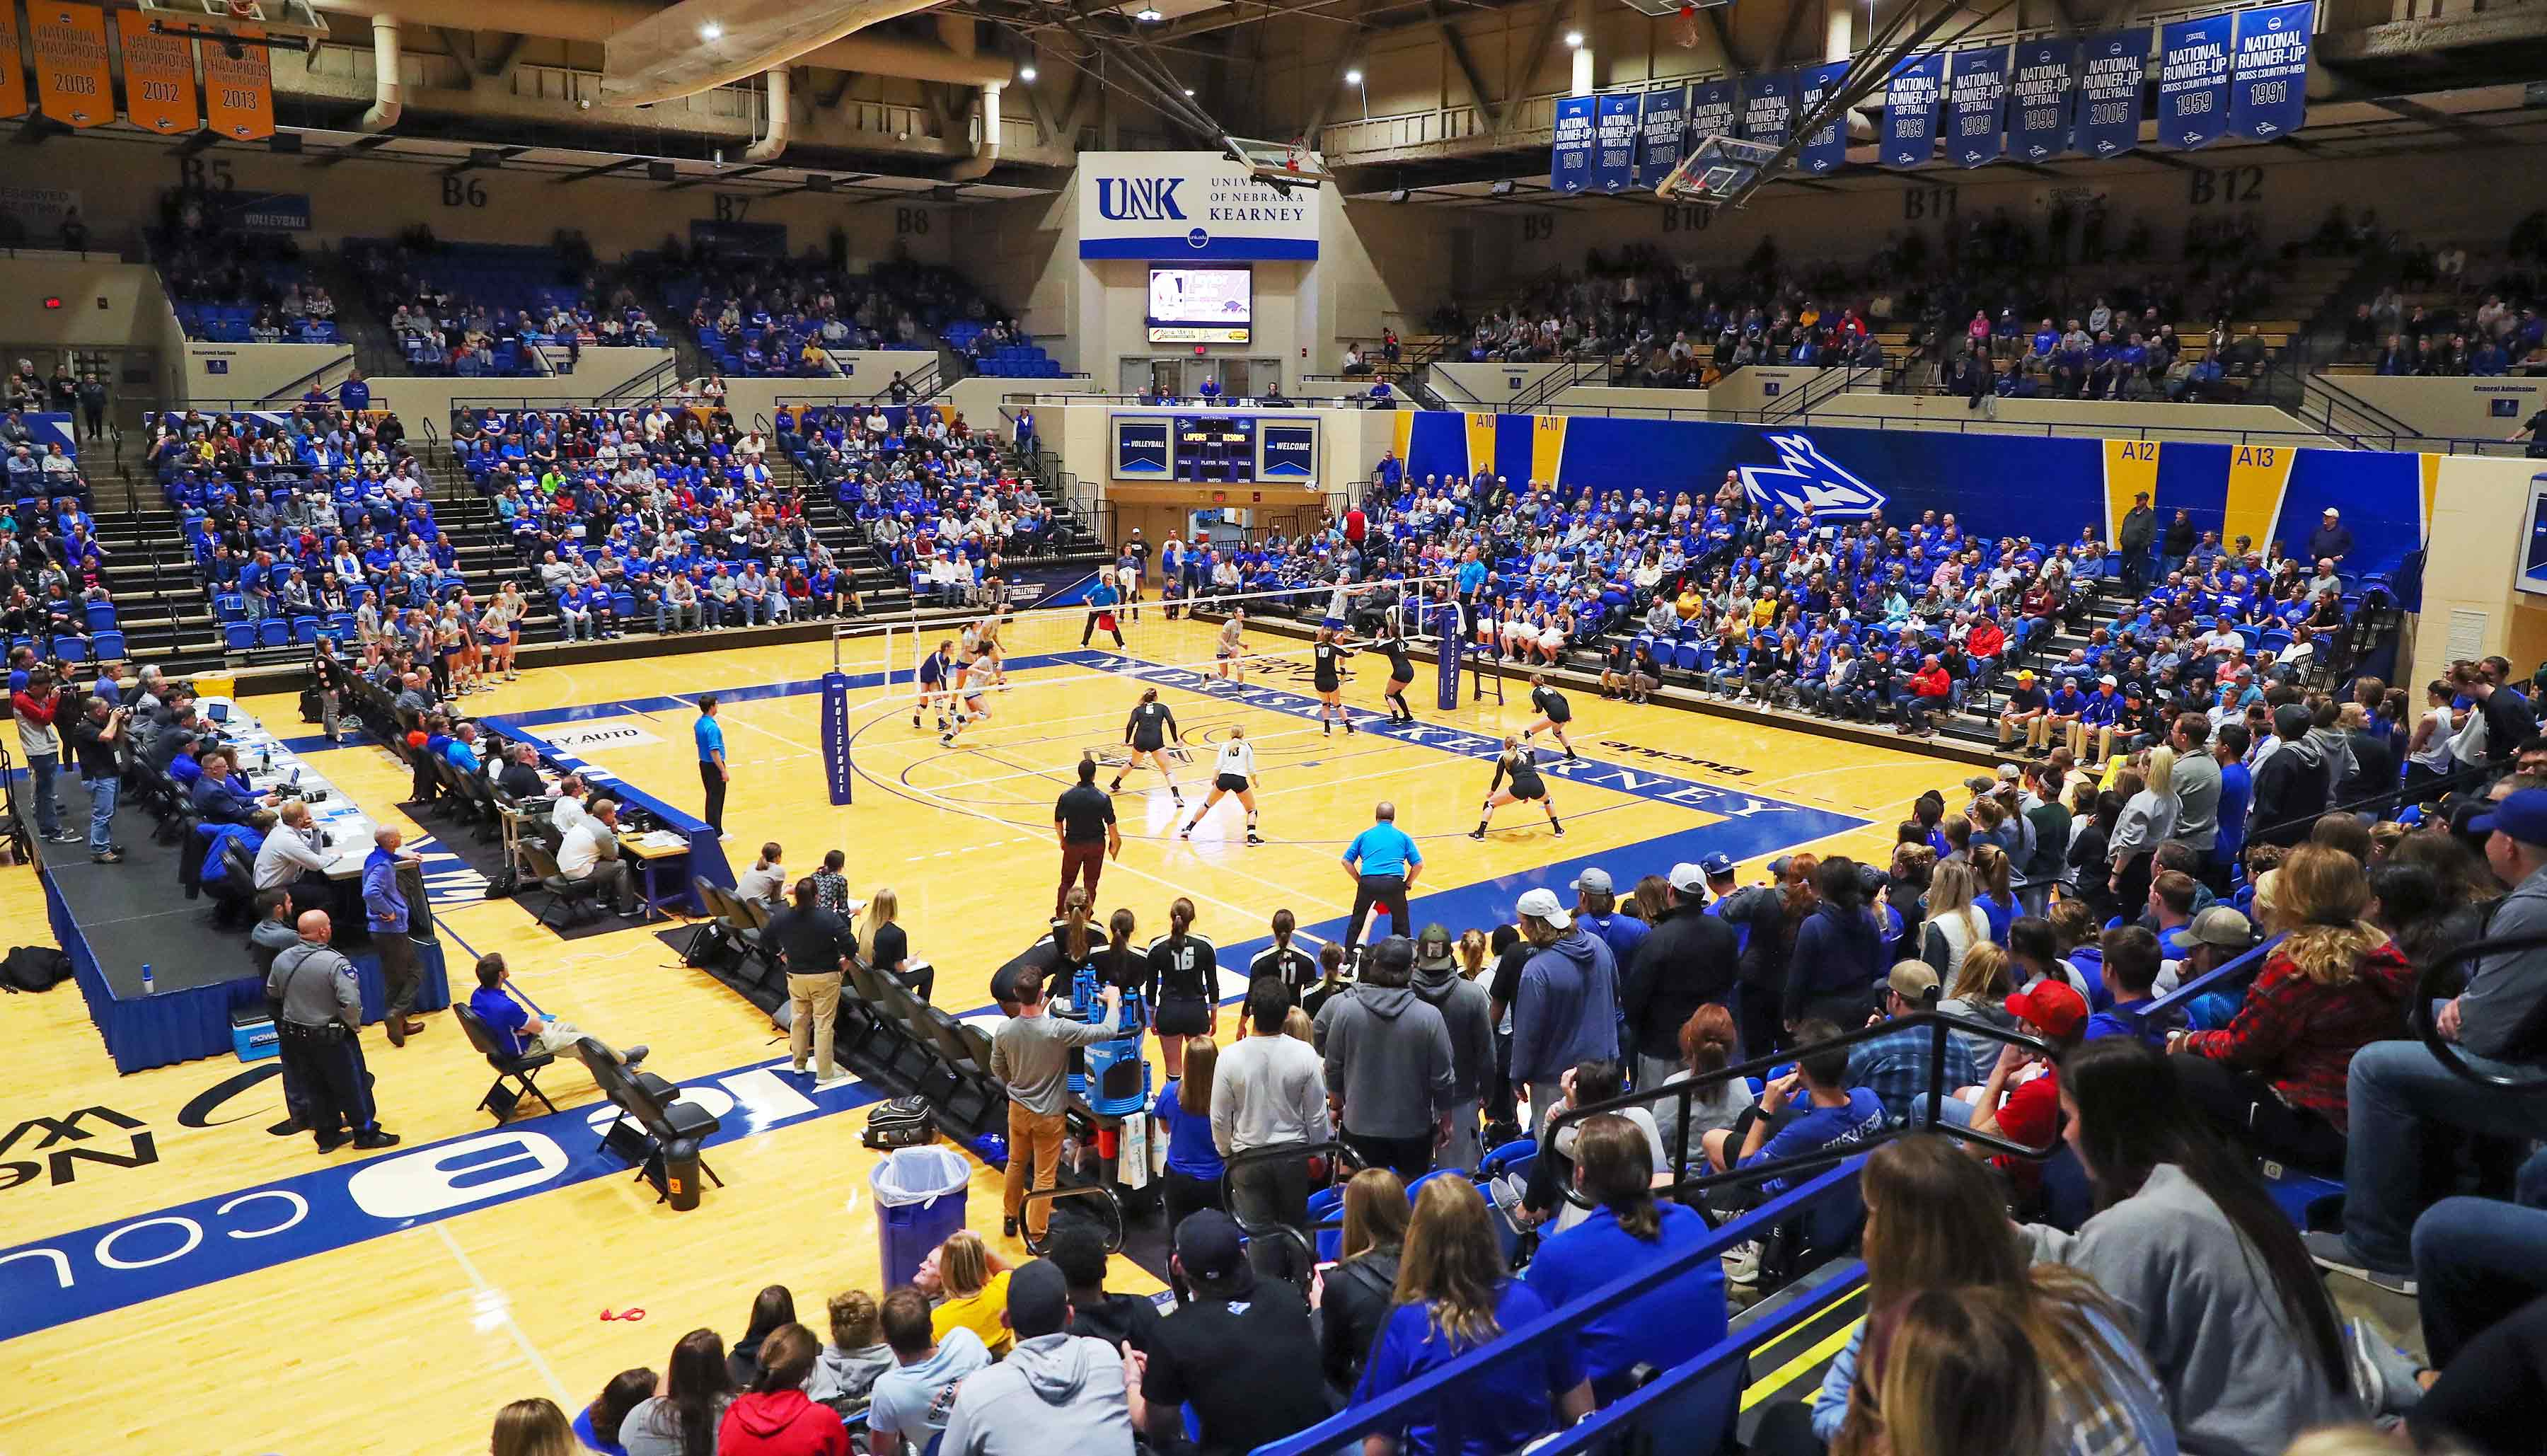 Volleyball Video Harding Spoils Ncaa Party Lopers End Season With 33 3 Record